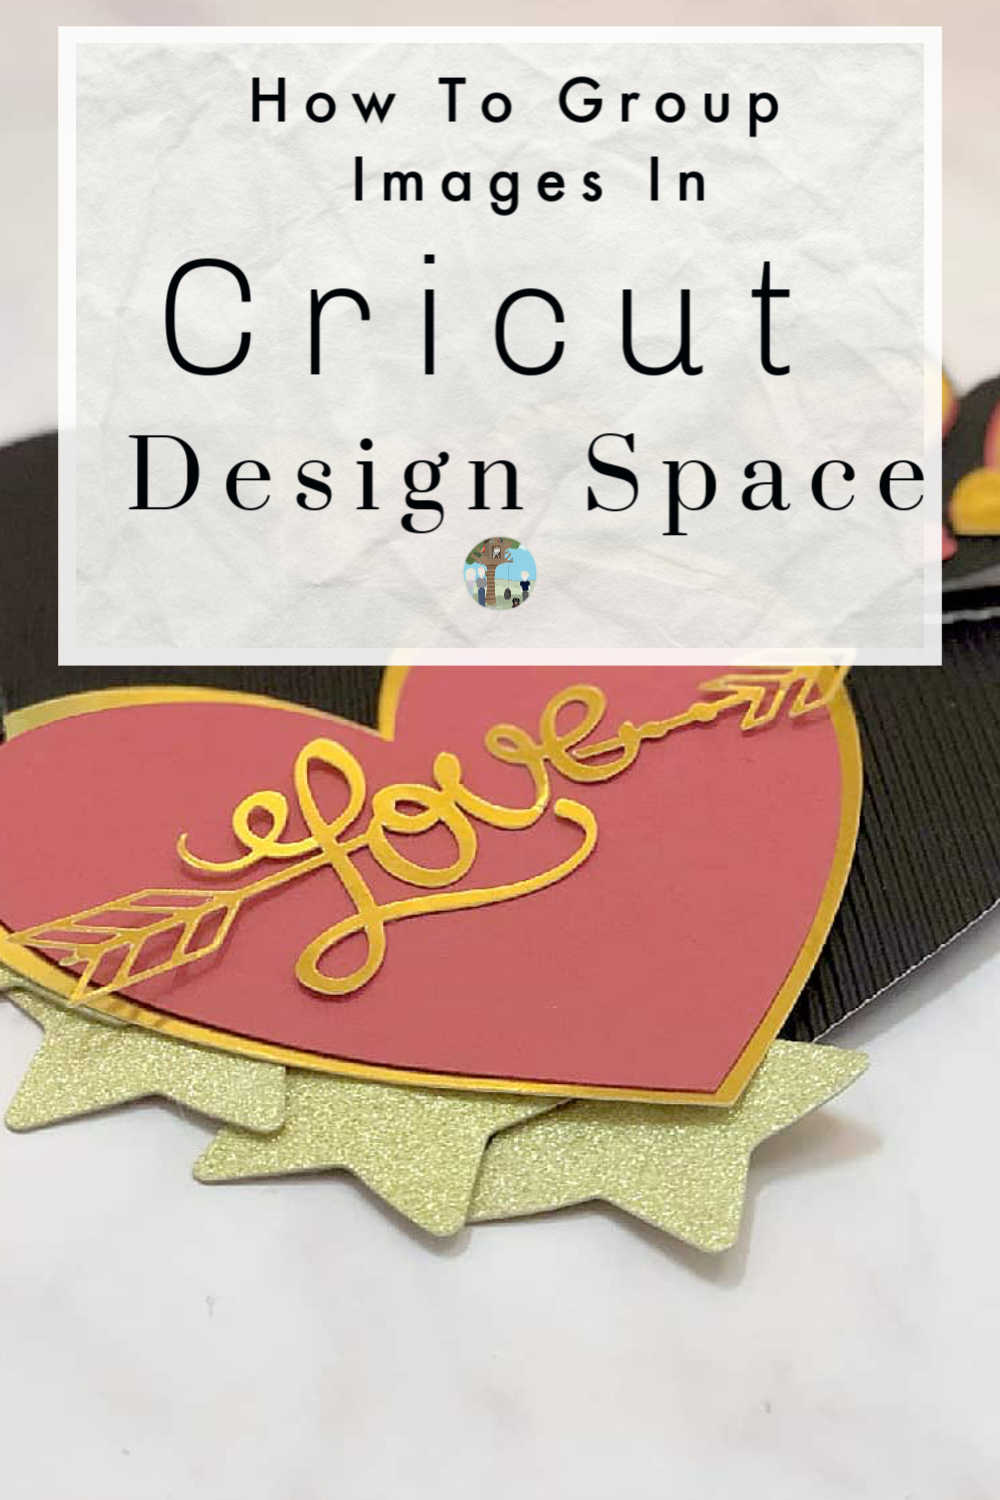 How to Group in Cricut Design Space, how to group and ungroup and what is it used for.